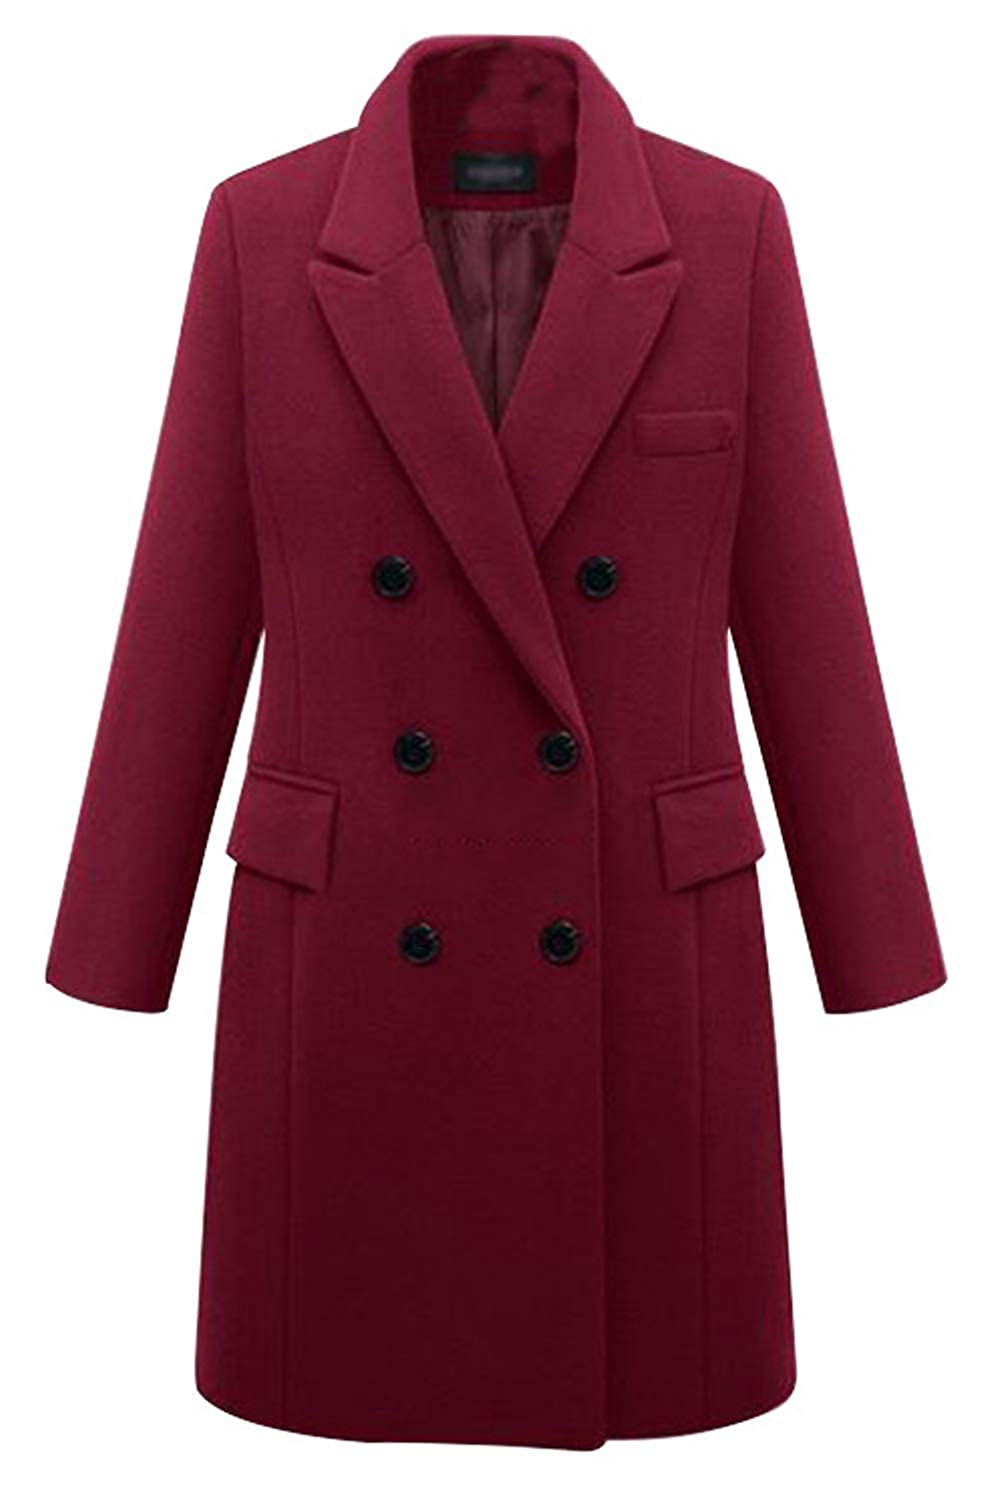 Sevozimda Womens Wool Coat Double Breasted Winter Woolen Long Coats Outwear